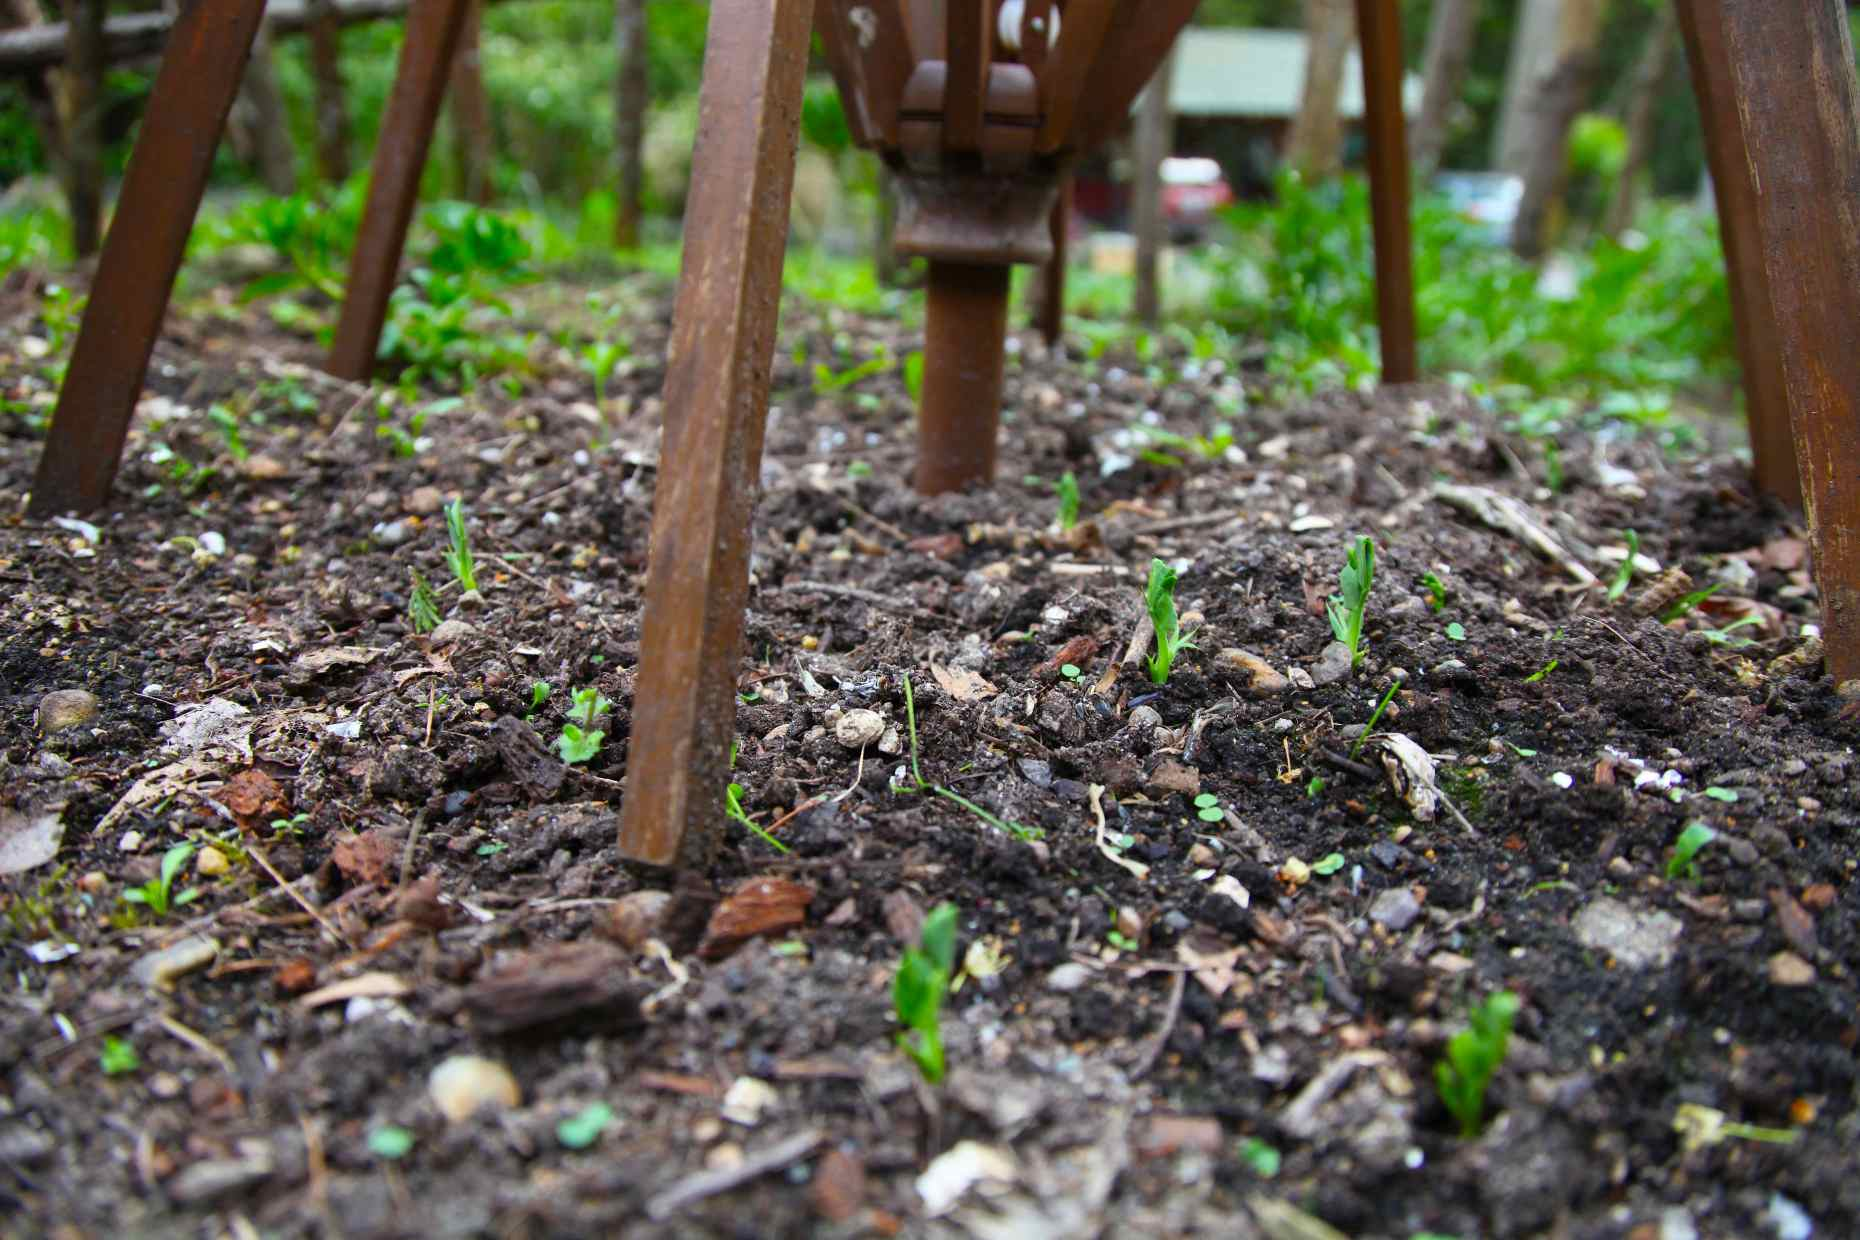 Just Sproutin'. Peas are reaching toward their patio umbrella trellis.